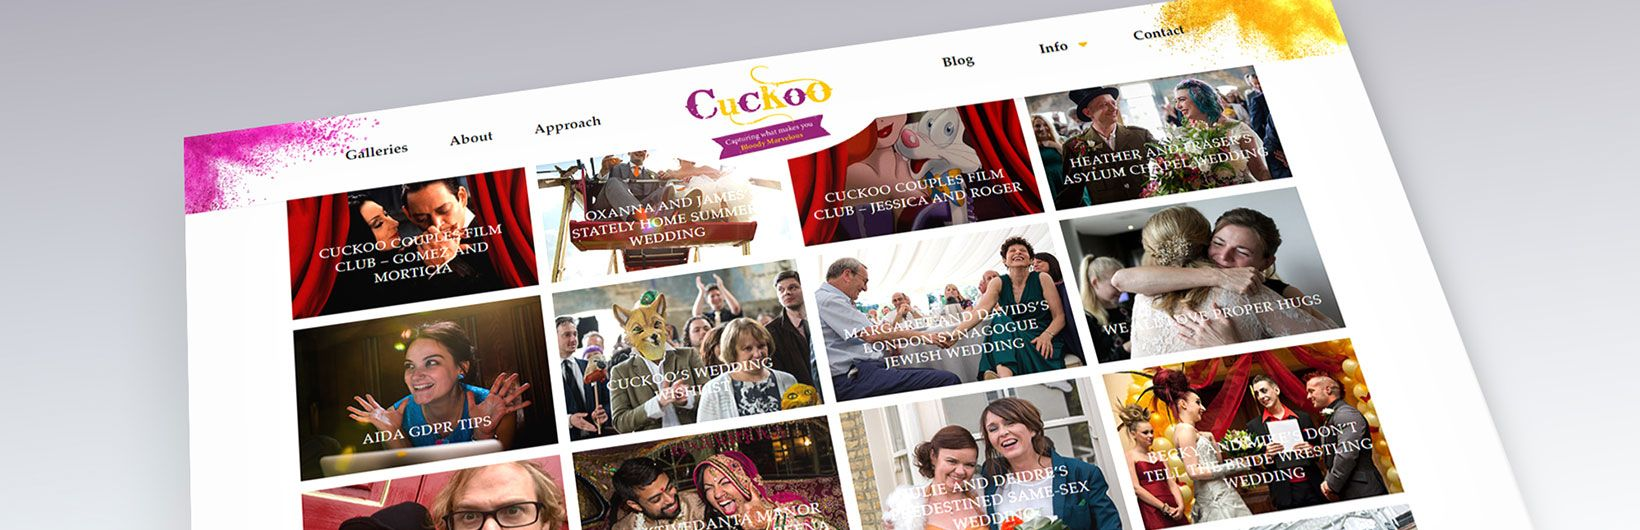 Cuckoo Wedding Photography WordPress Website